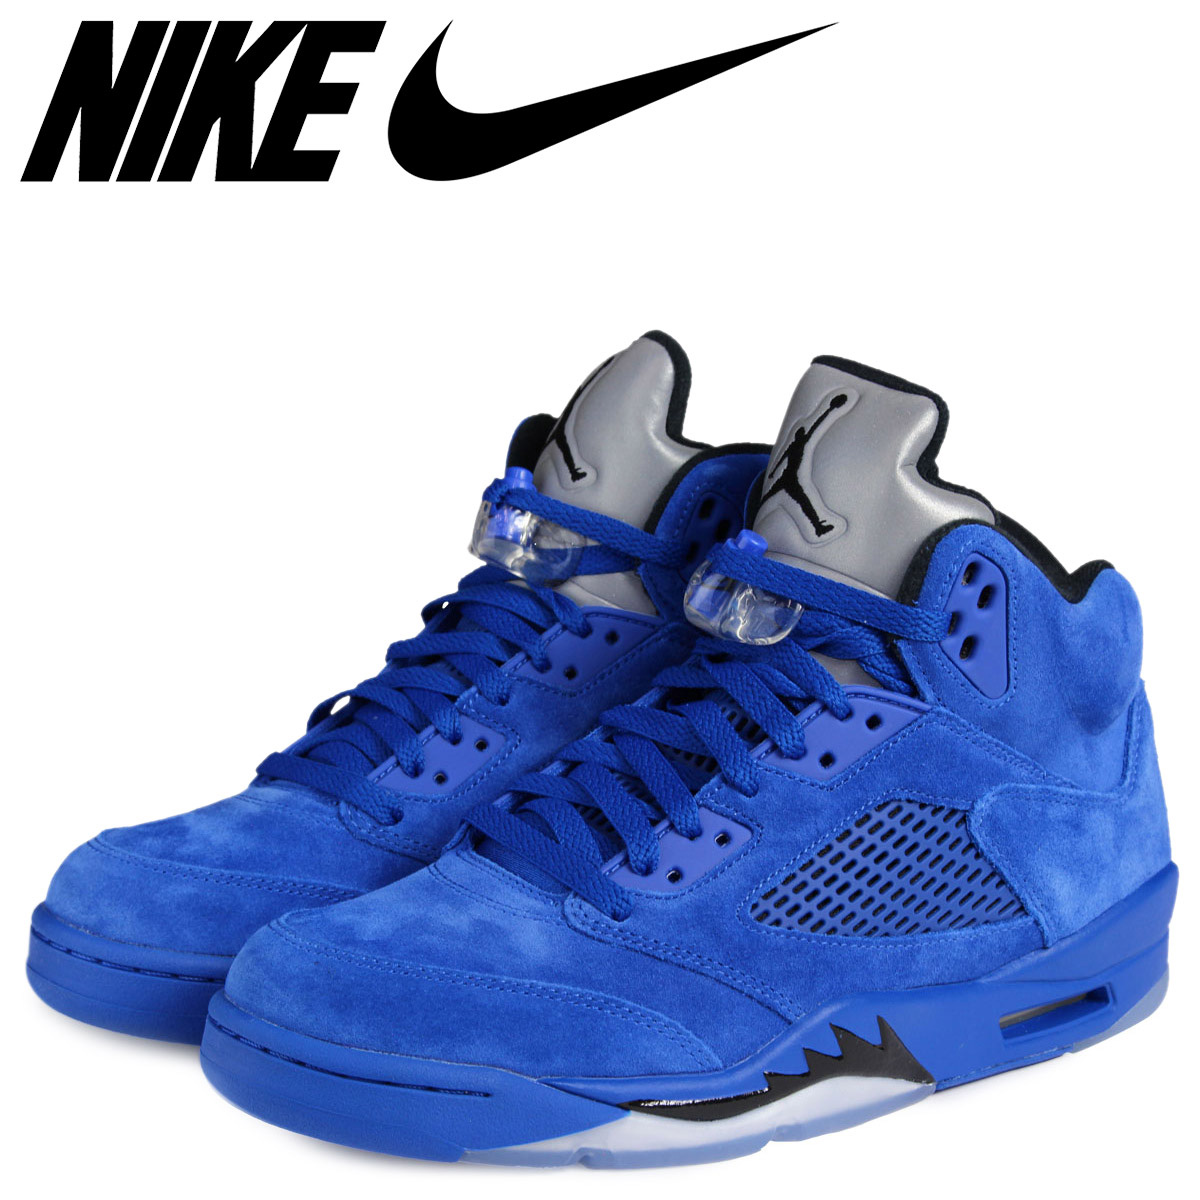 purchase cheap c13a6 9e756 Sugar Online Shop  NIKE Nike Air Jordan 5 nostalgic sneakers AIR JORDAN 5  RETRO BLUE SUEDE 136,027-401 men s shoes blue  10 12 Shinnyu load     Rakuten ...